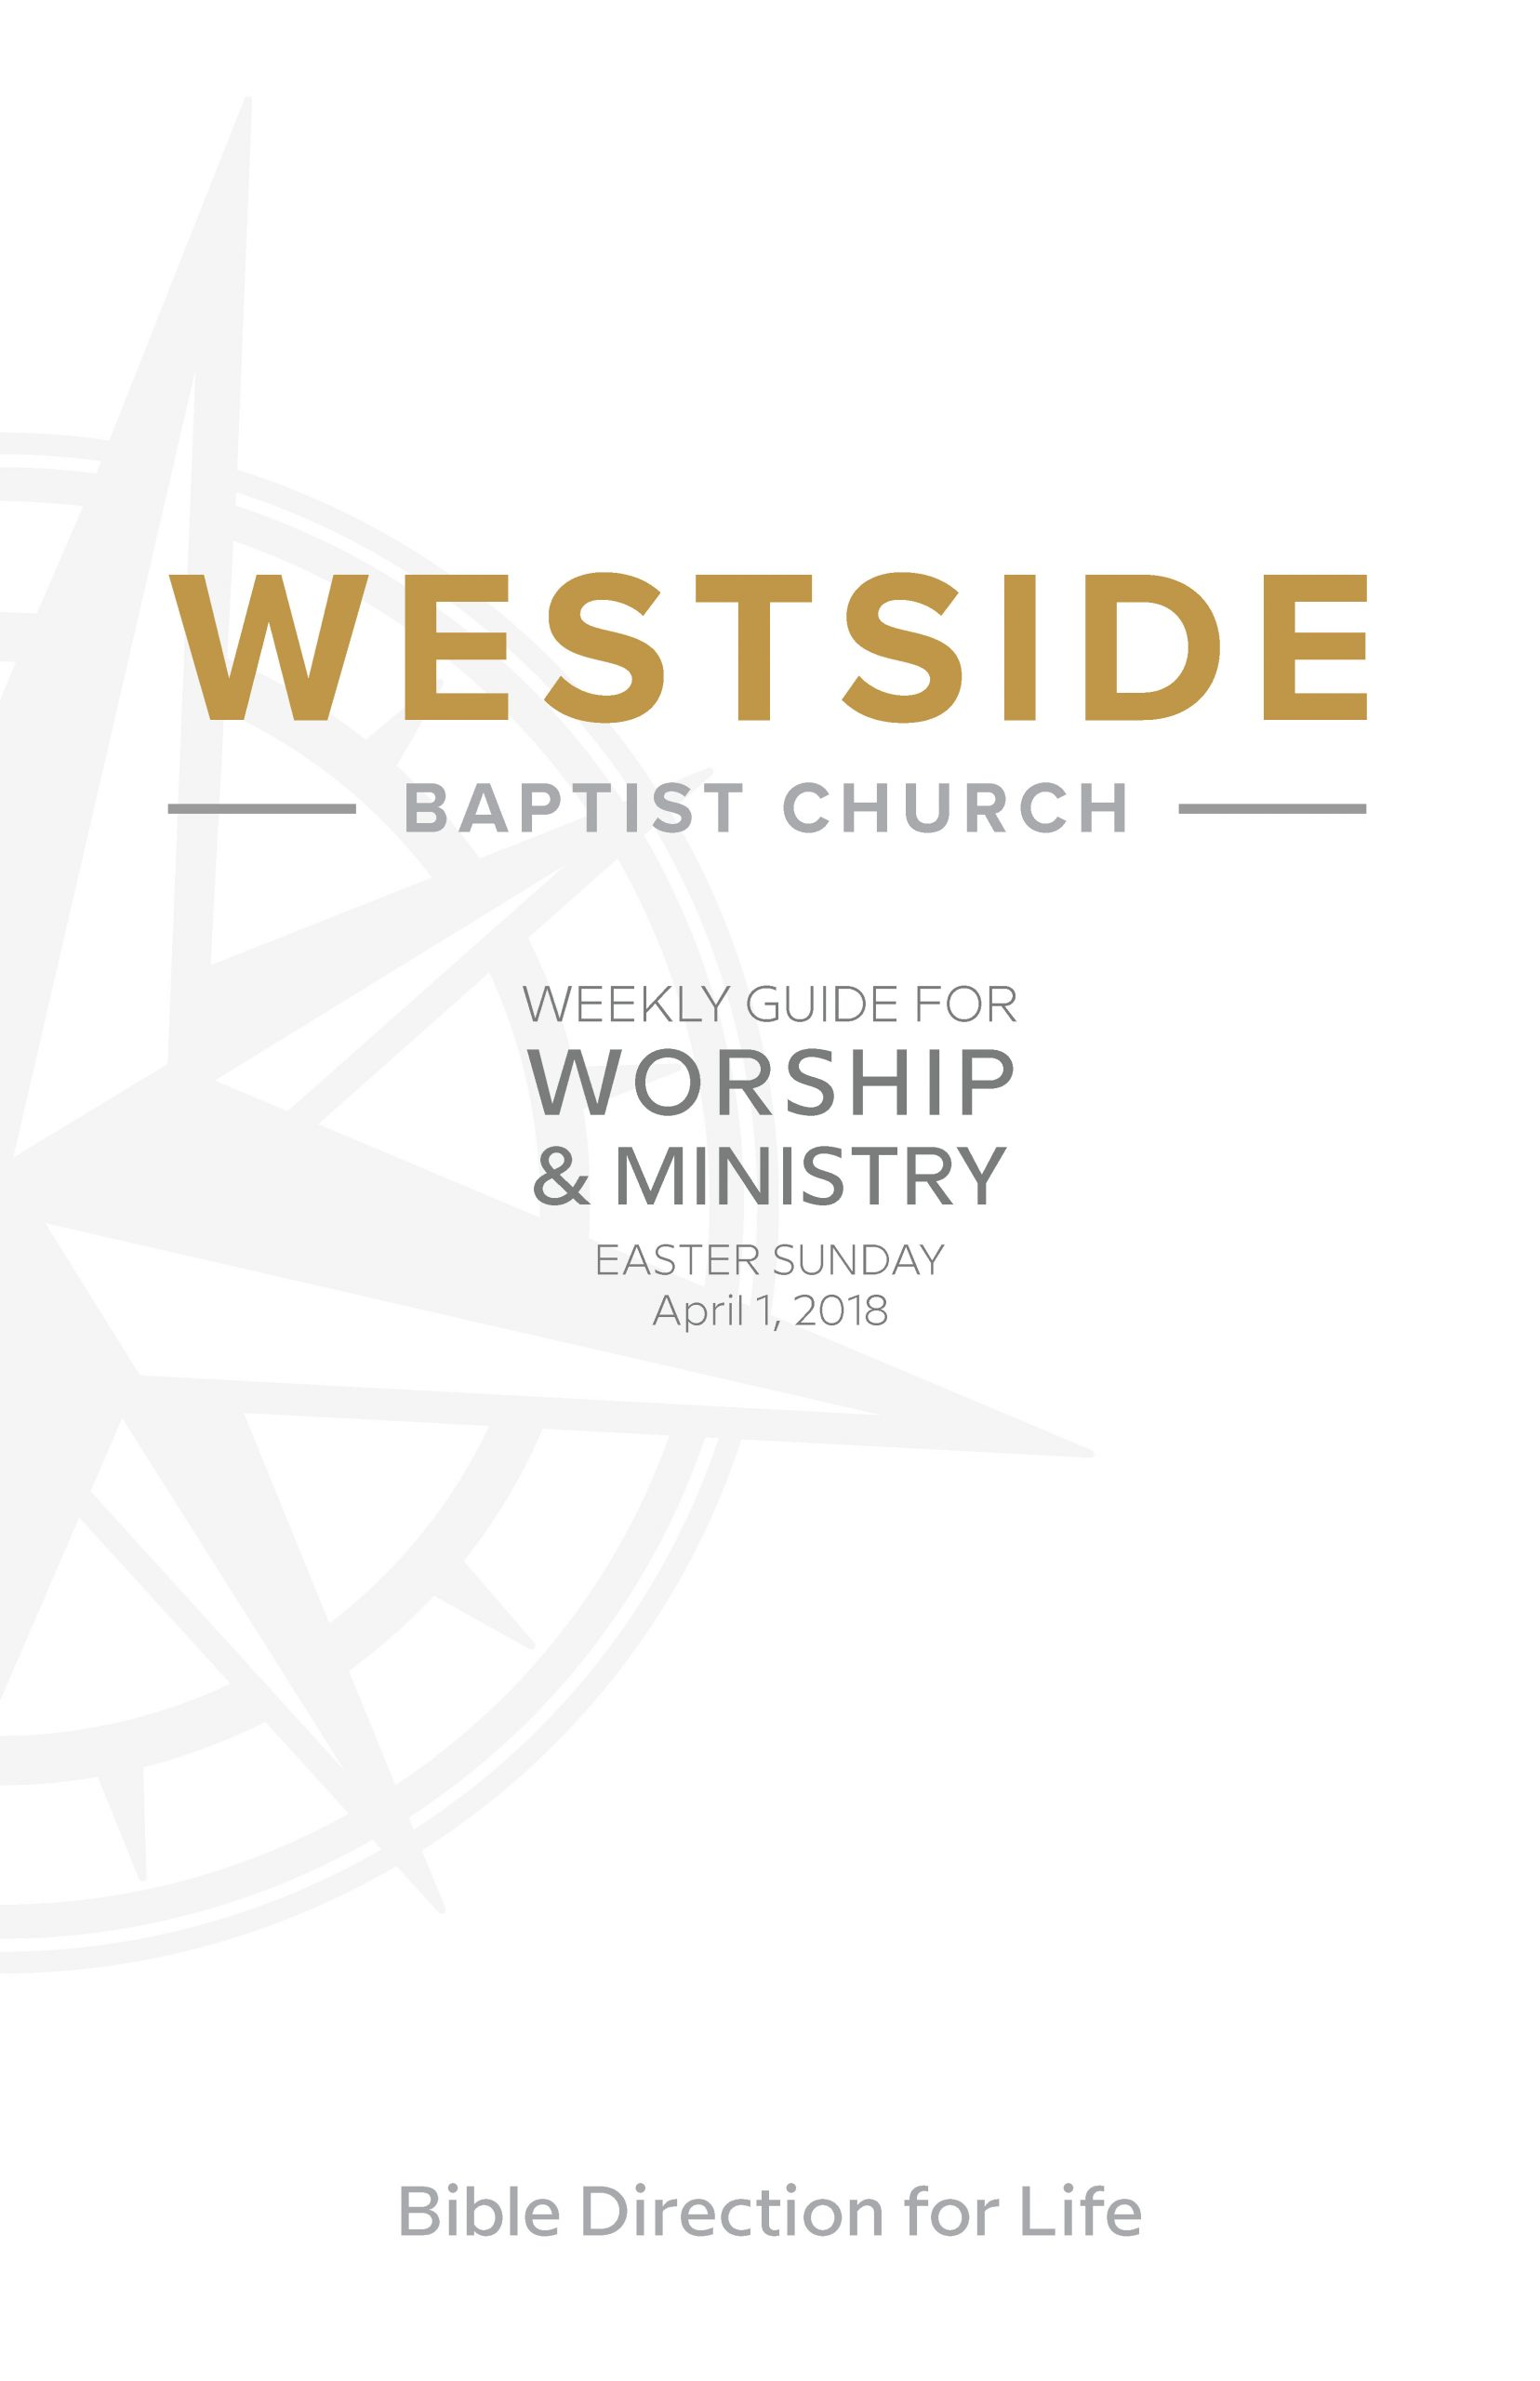 Weekly Guide for Worship and Ministry—Easter Sunday, April 1